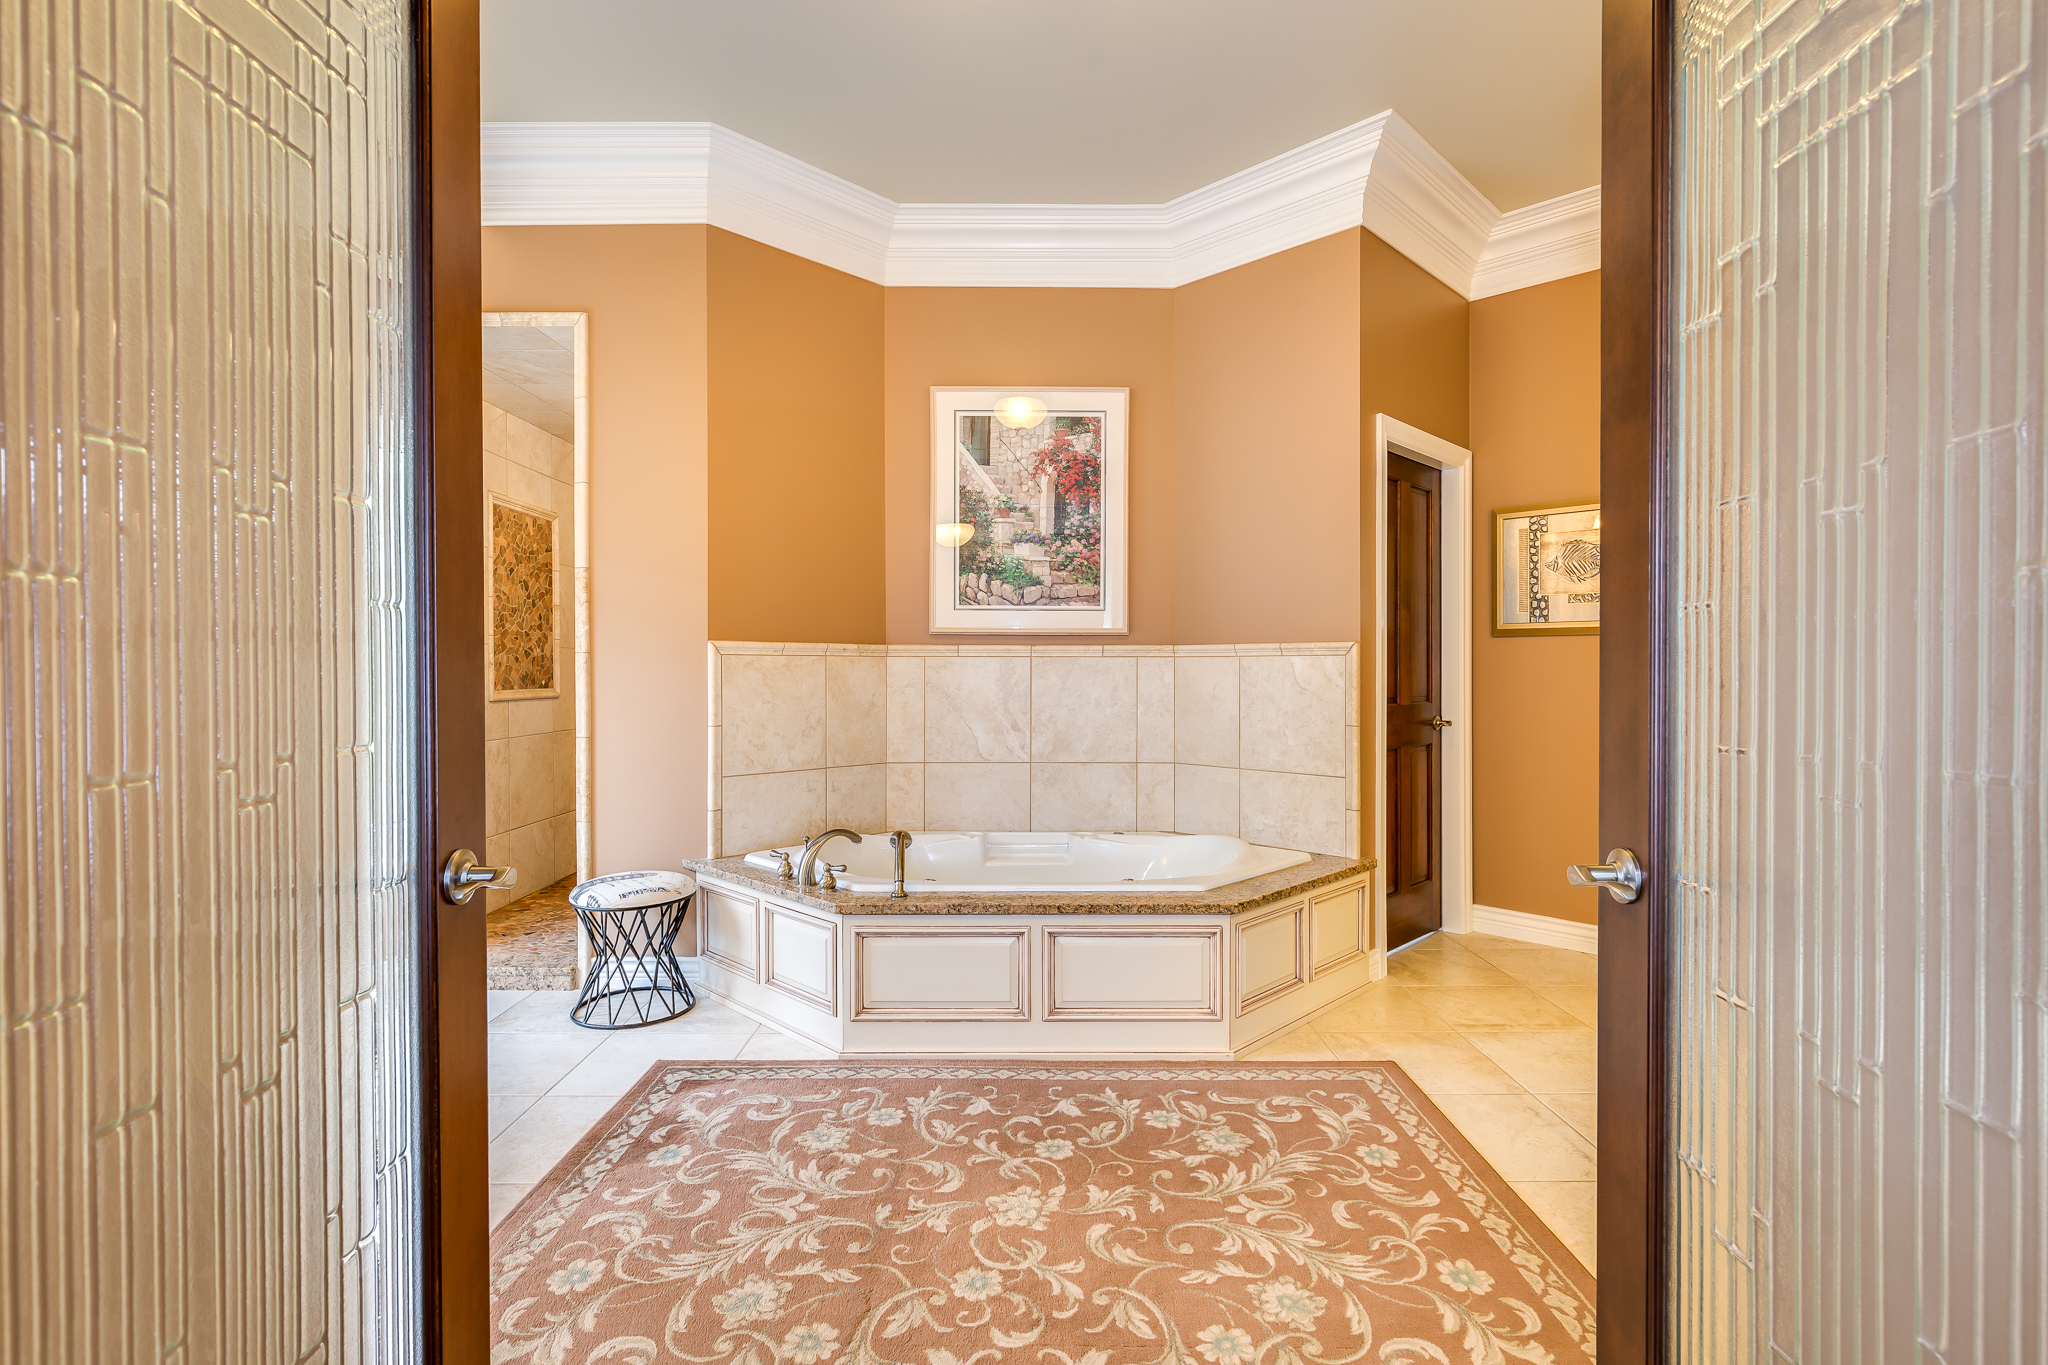 Grand entrance to a grand master bathroom.⠀ ⠀ #kamloopsphotographer #lorriejanephotography #kamloopsrealestatephotographer #kamloopslifestylephotographer #luxuryhome #RealEstate #Realtor #Realty #ForSale #NewHome #HouseHunting #HomeSale #HomesForSale #Property #Properties #Listing #Renovated #JustListed #picoftheday #instadaily #homedesign #instalike #instagram #firstimpression #curbappeal #homesweethome #kamloopsbcnow #dreamhome #milliondollarlisting #countrylife